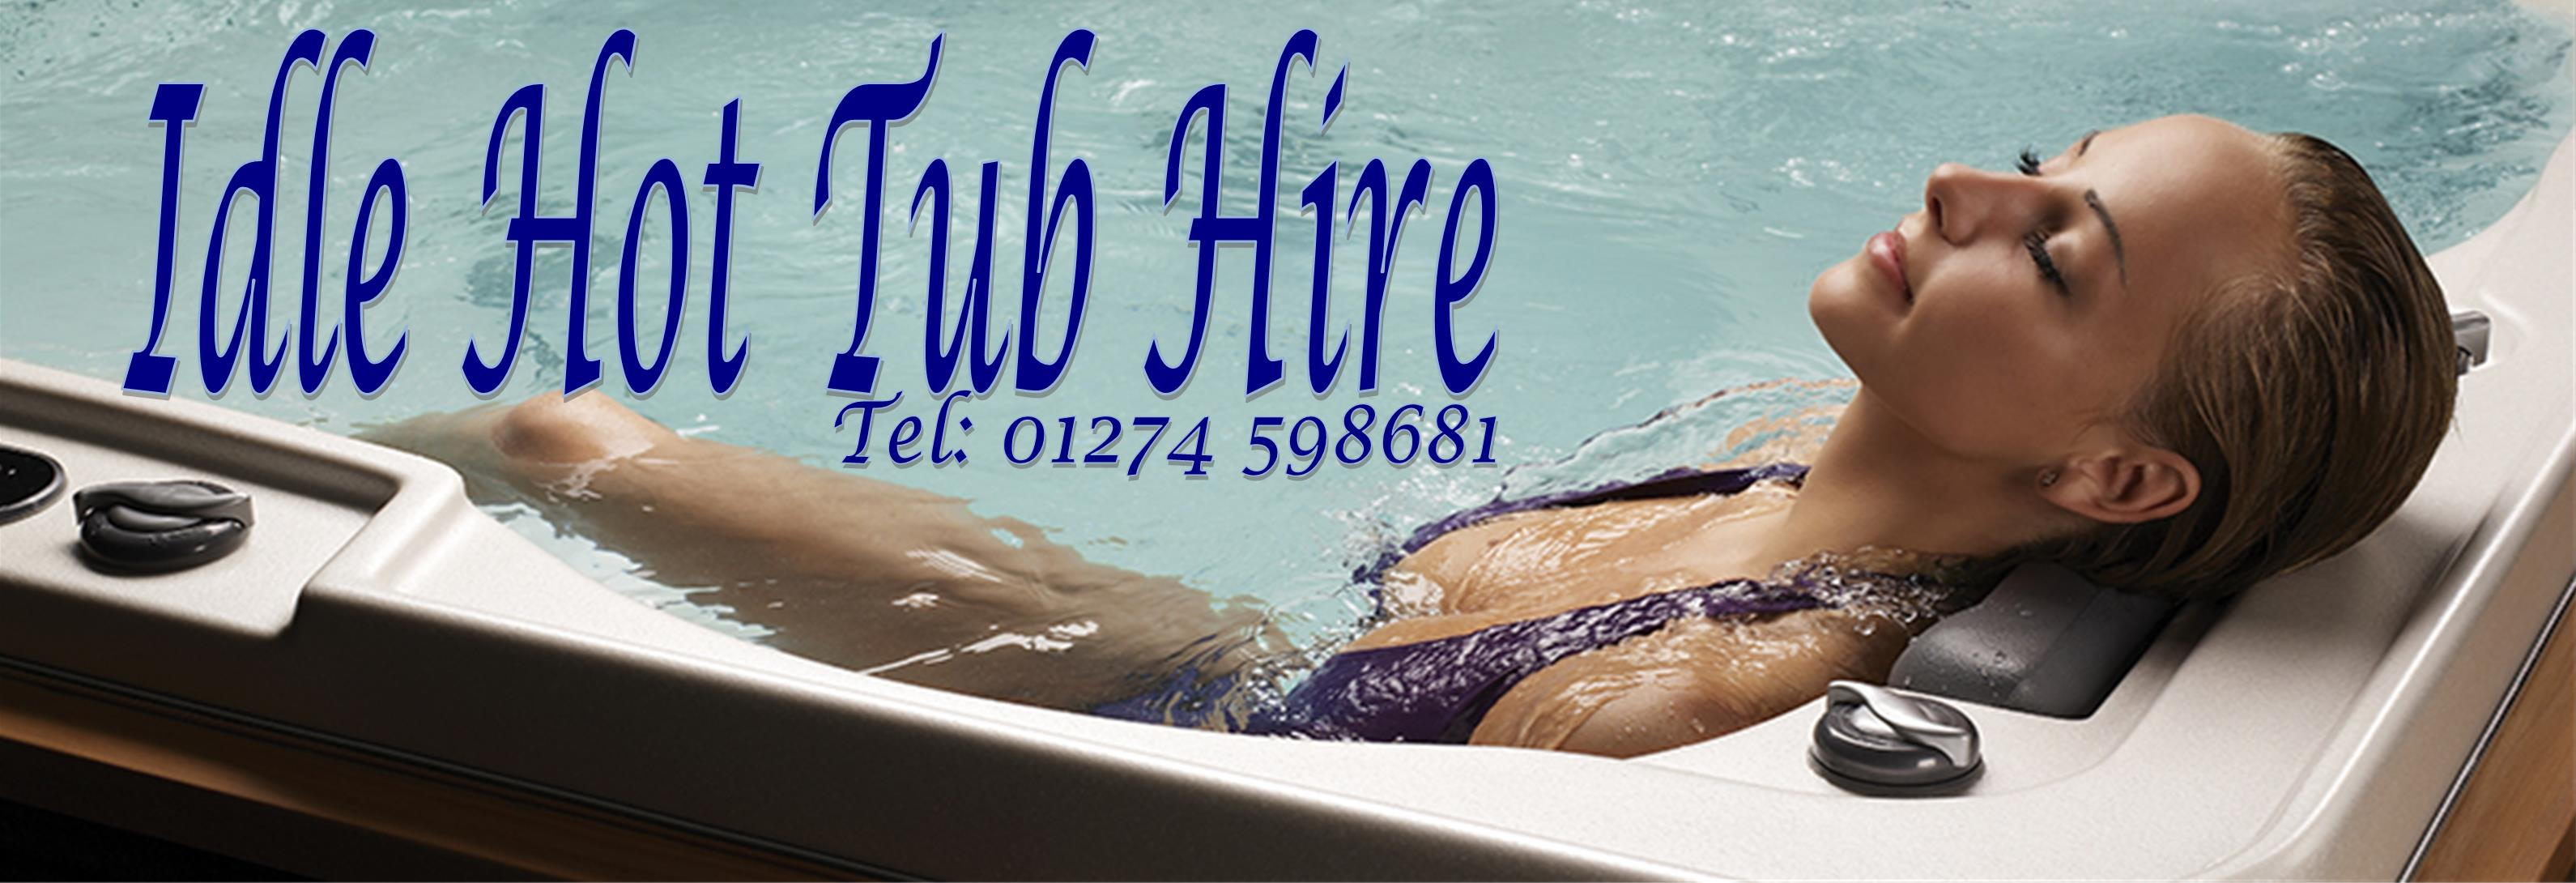 Idle Hot Tub Hire